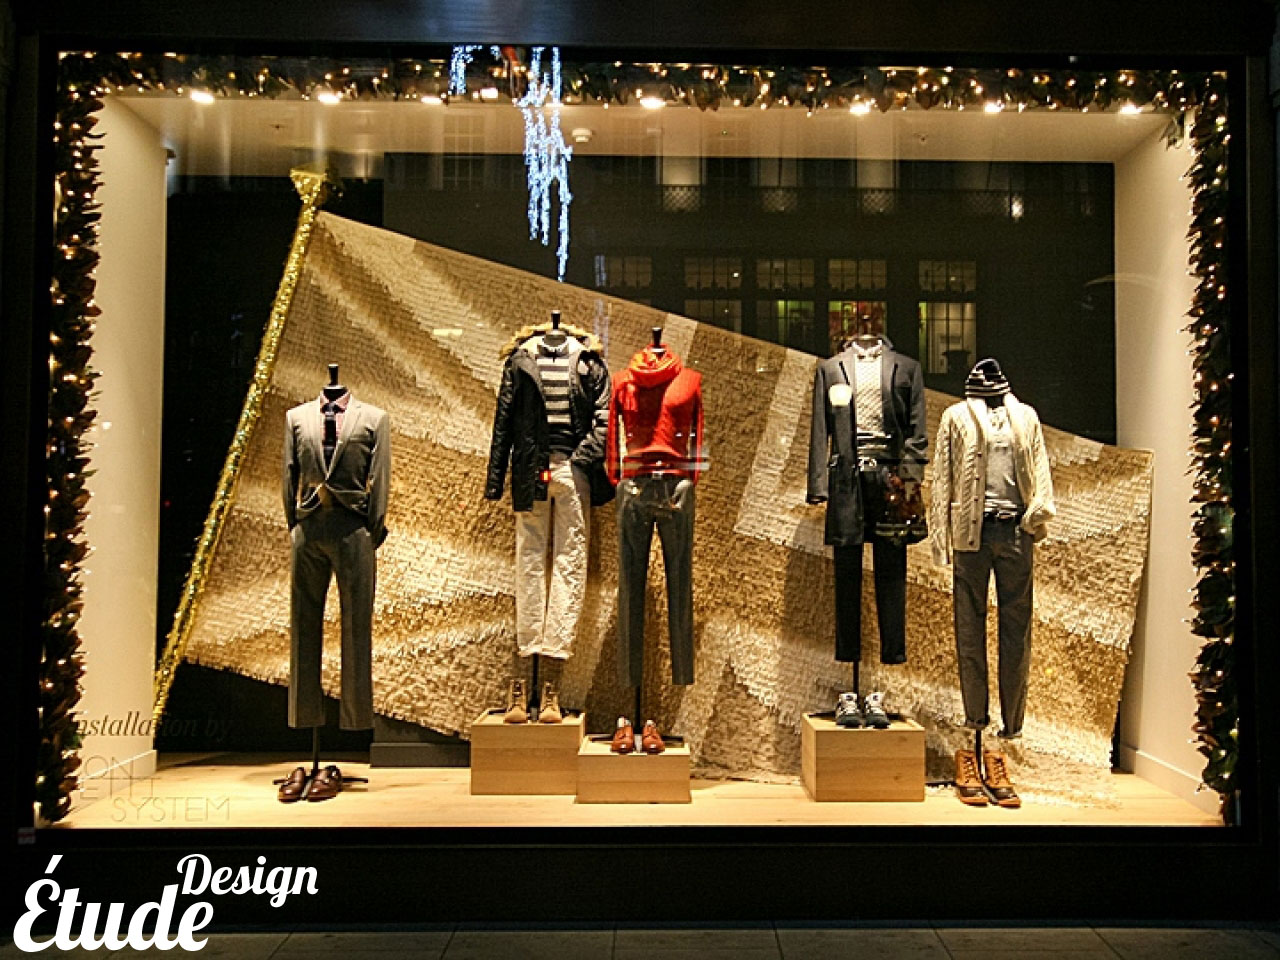 christmas-shop-window-display-best-christmas-window-displays-9aedeefc9cceec51